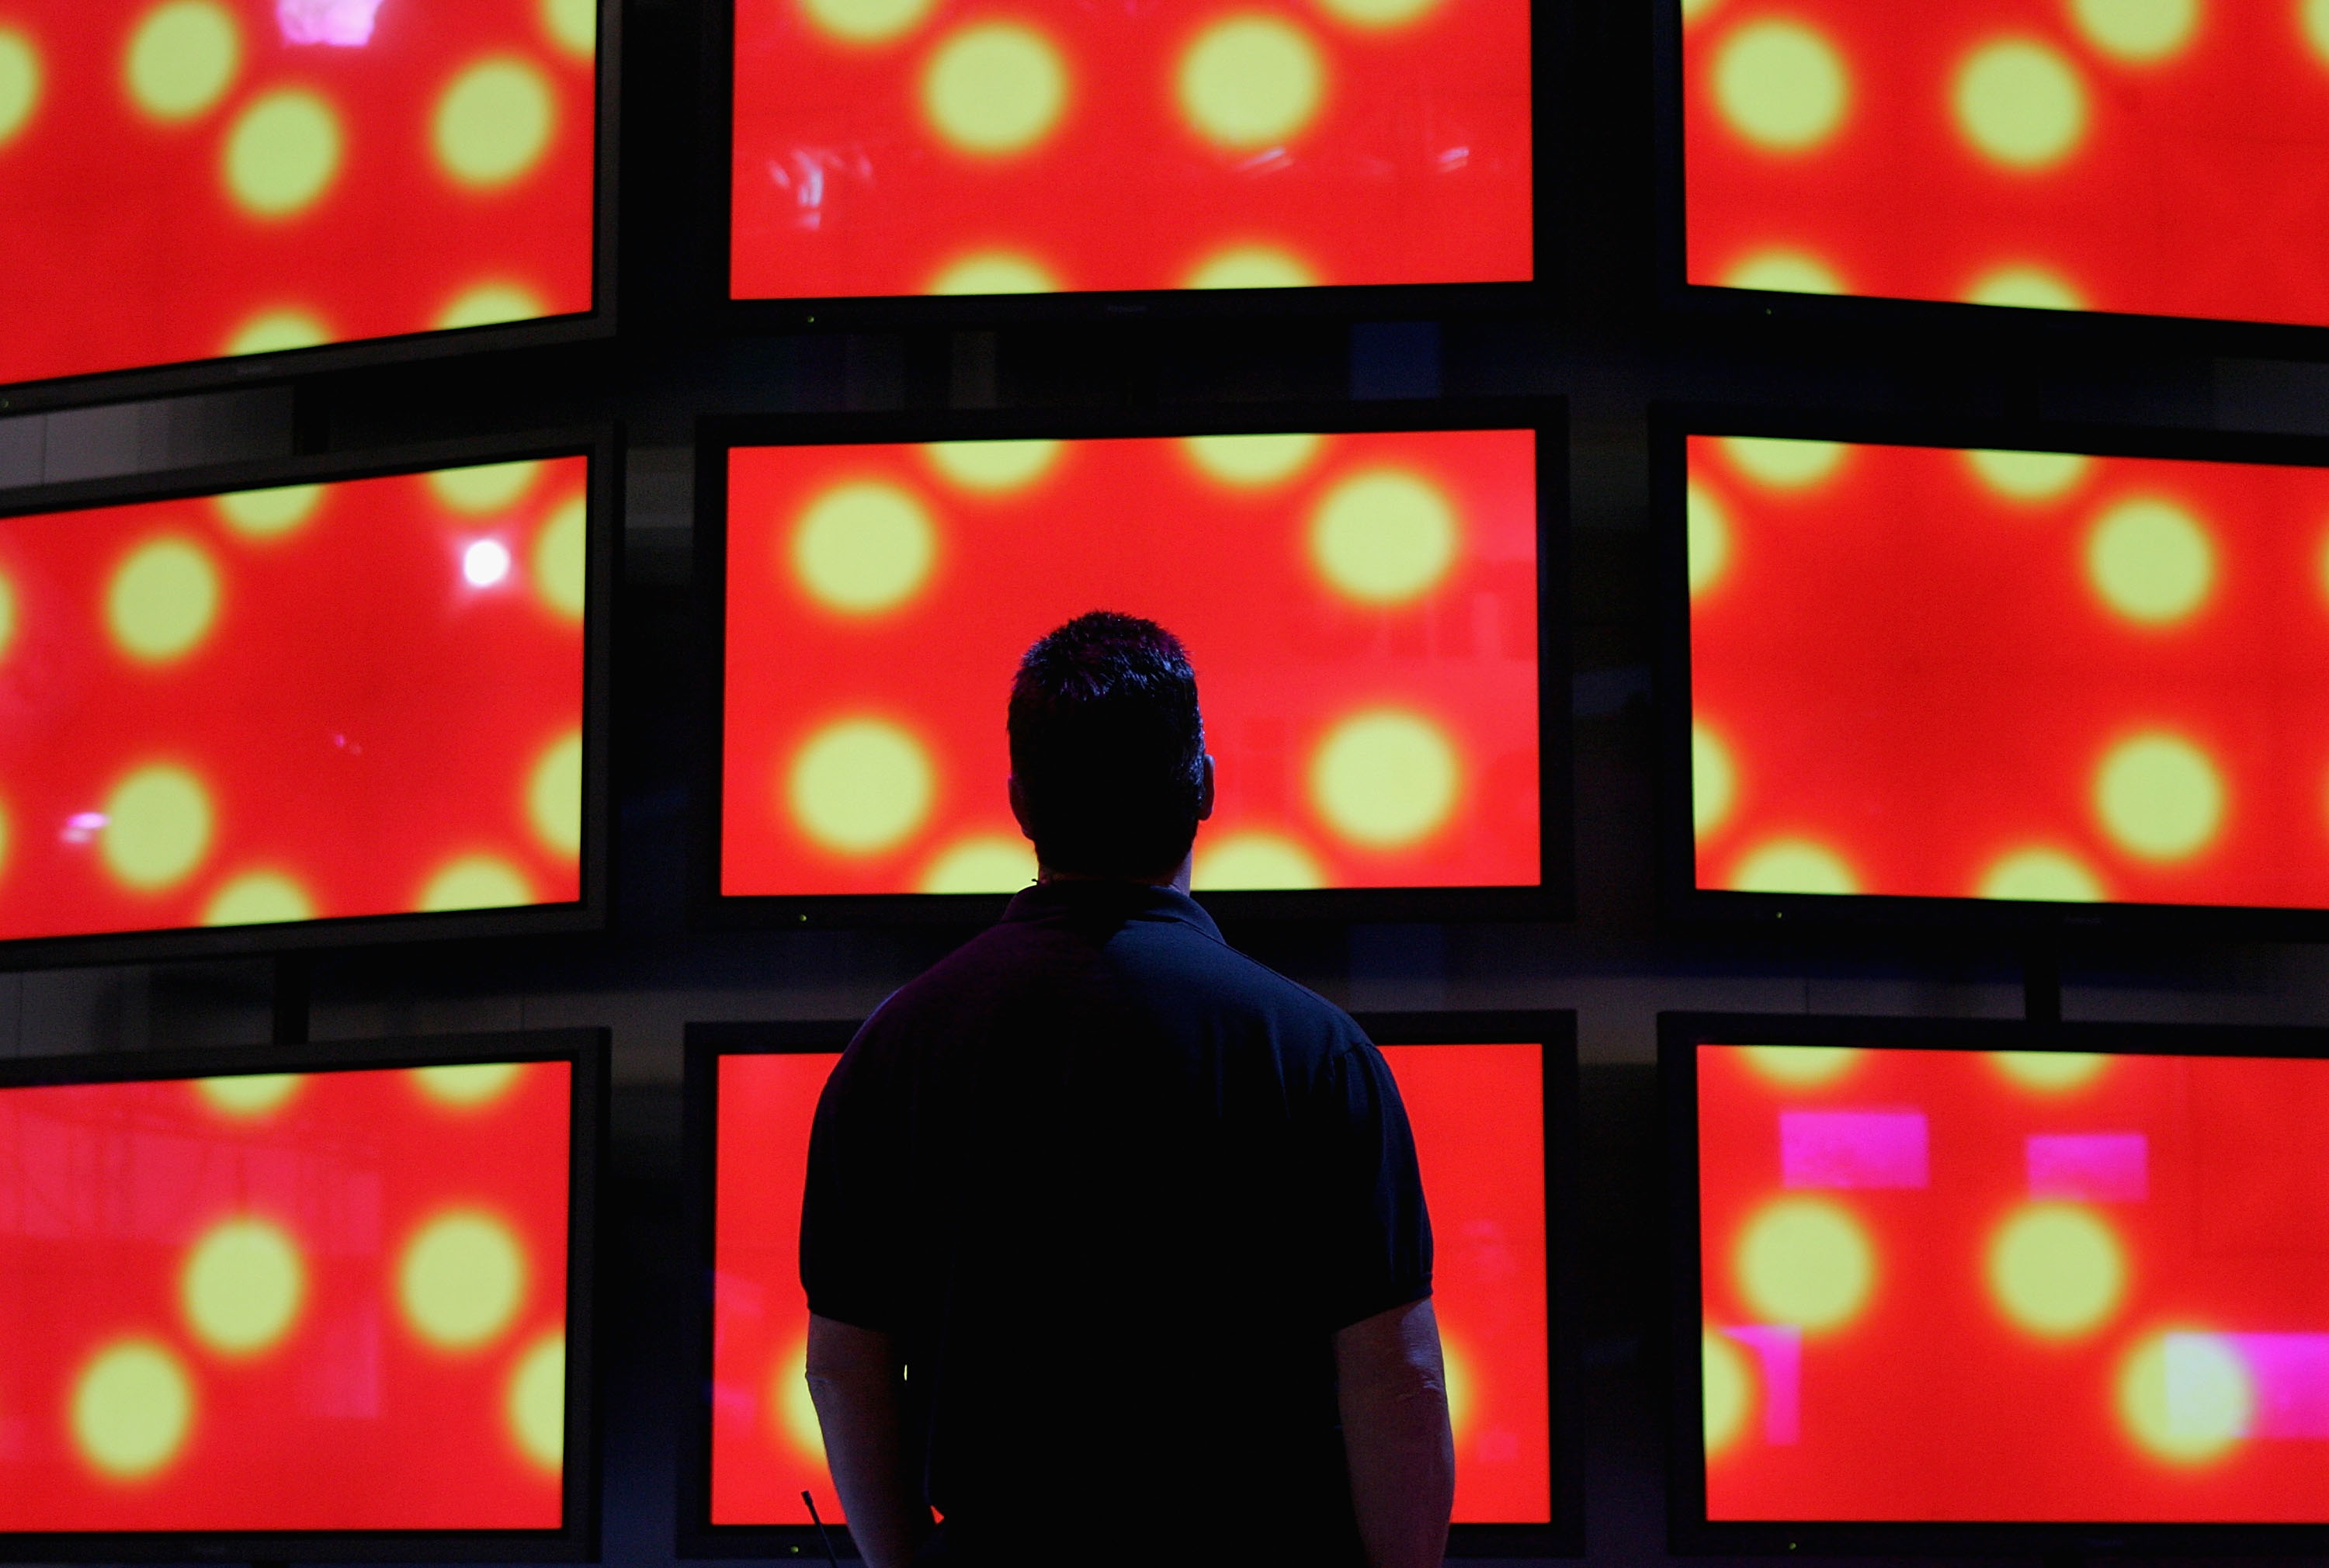 A man looks at a wall of Panasonic high definition televisions on display at the 2005 Consumer Electronics Show in Las Vegas, Nevada on Jan. 5, 2005.